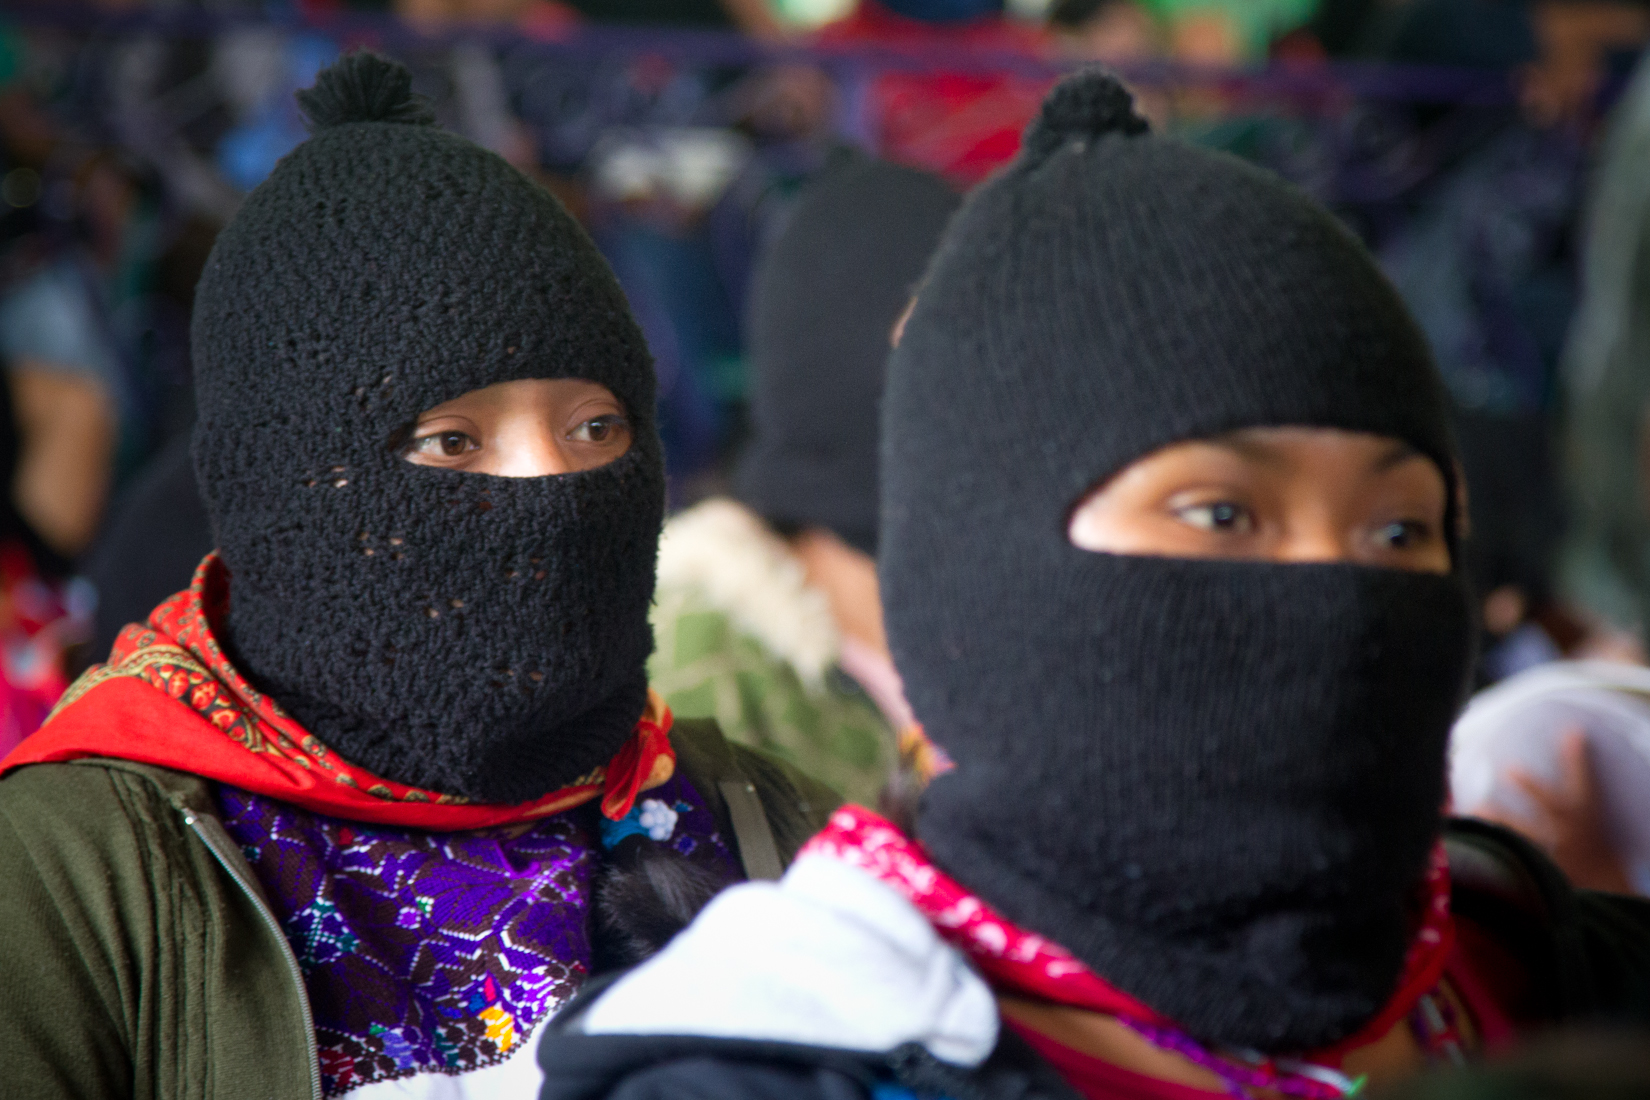 essay on zapatista movement Awareness of the zapatista movement has also been raised due to support by website of a militant african shack dwellers' movement that, like the zapatistas.